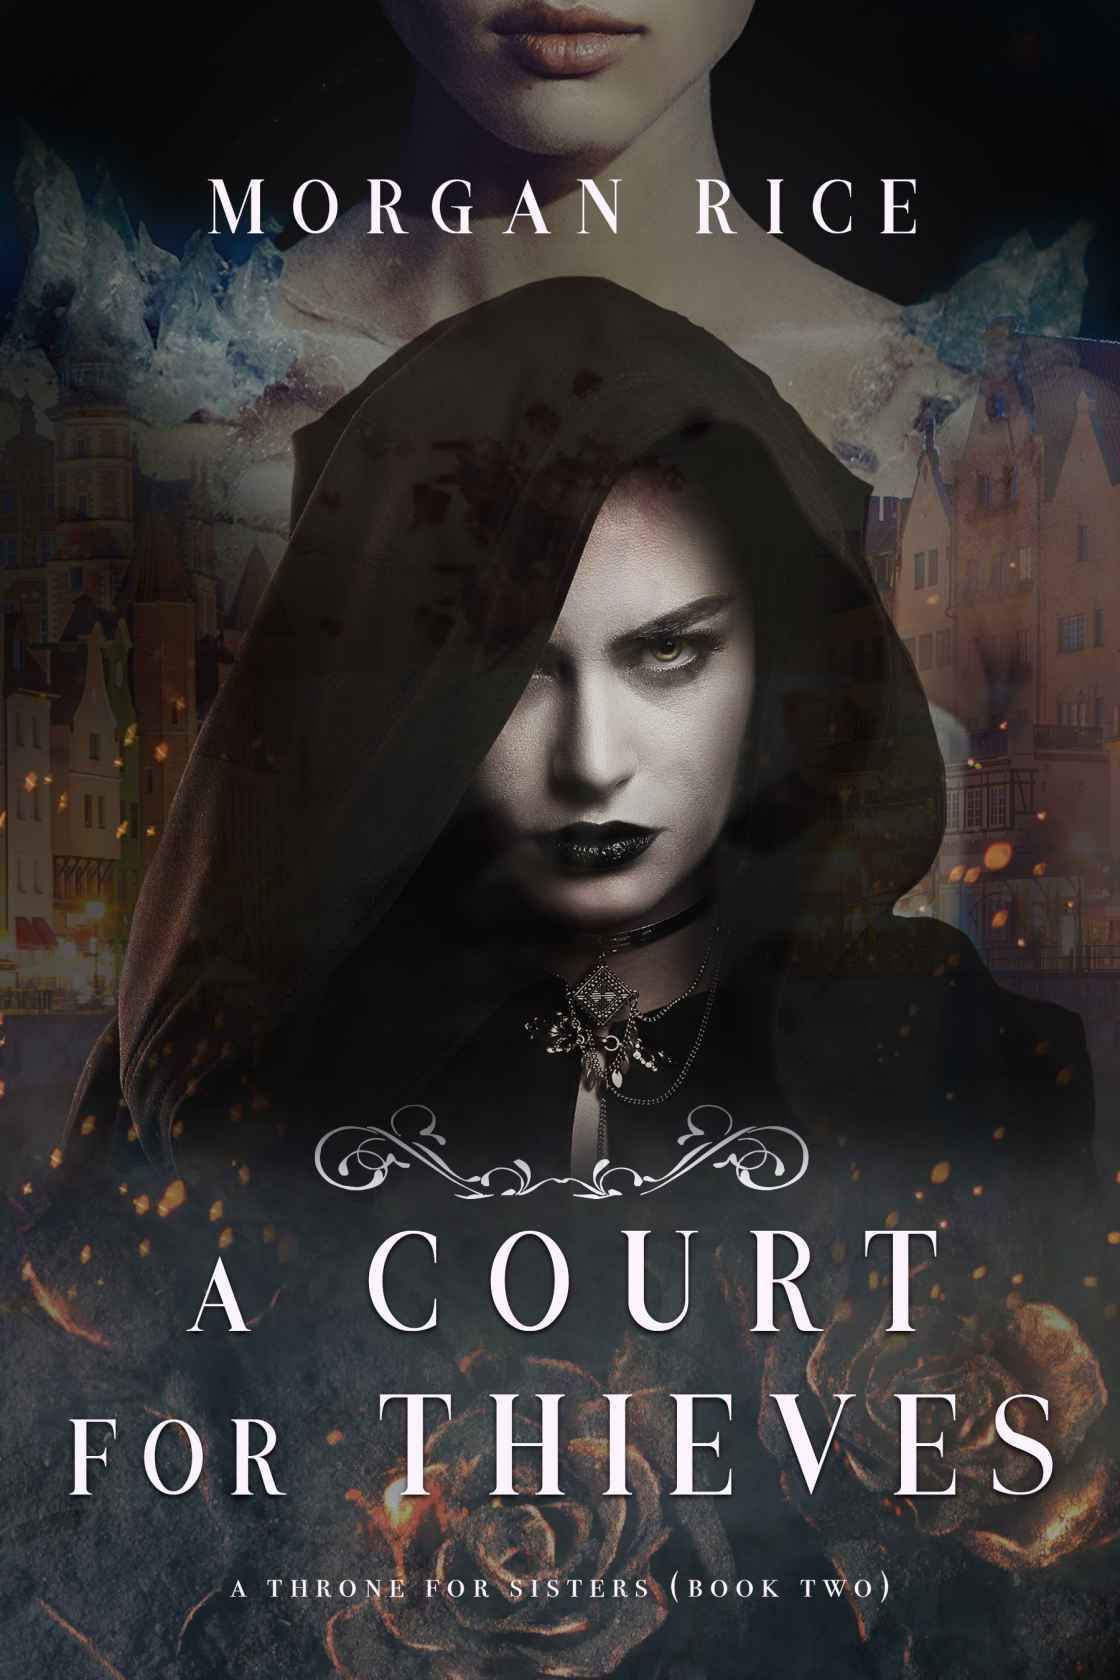 A Court for Thieves - We Read Fantasy